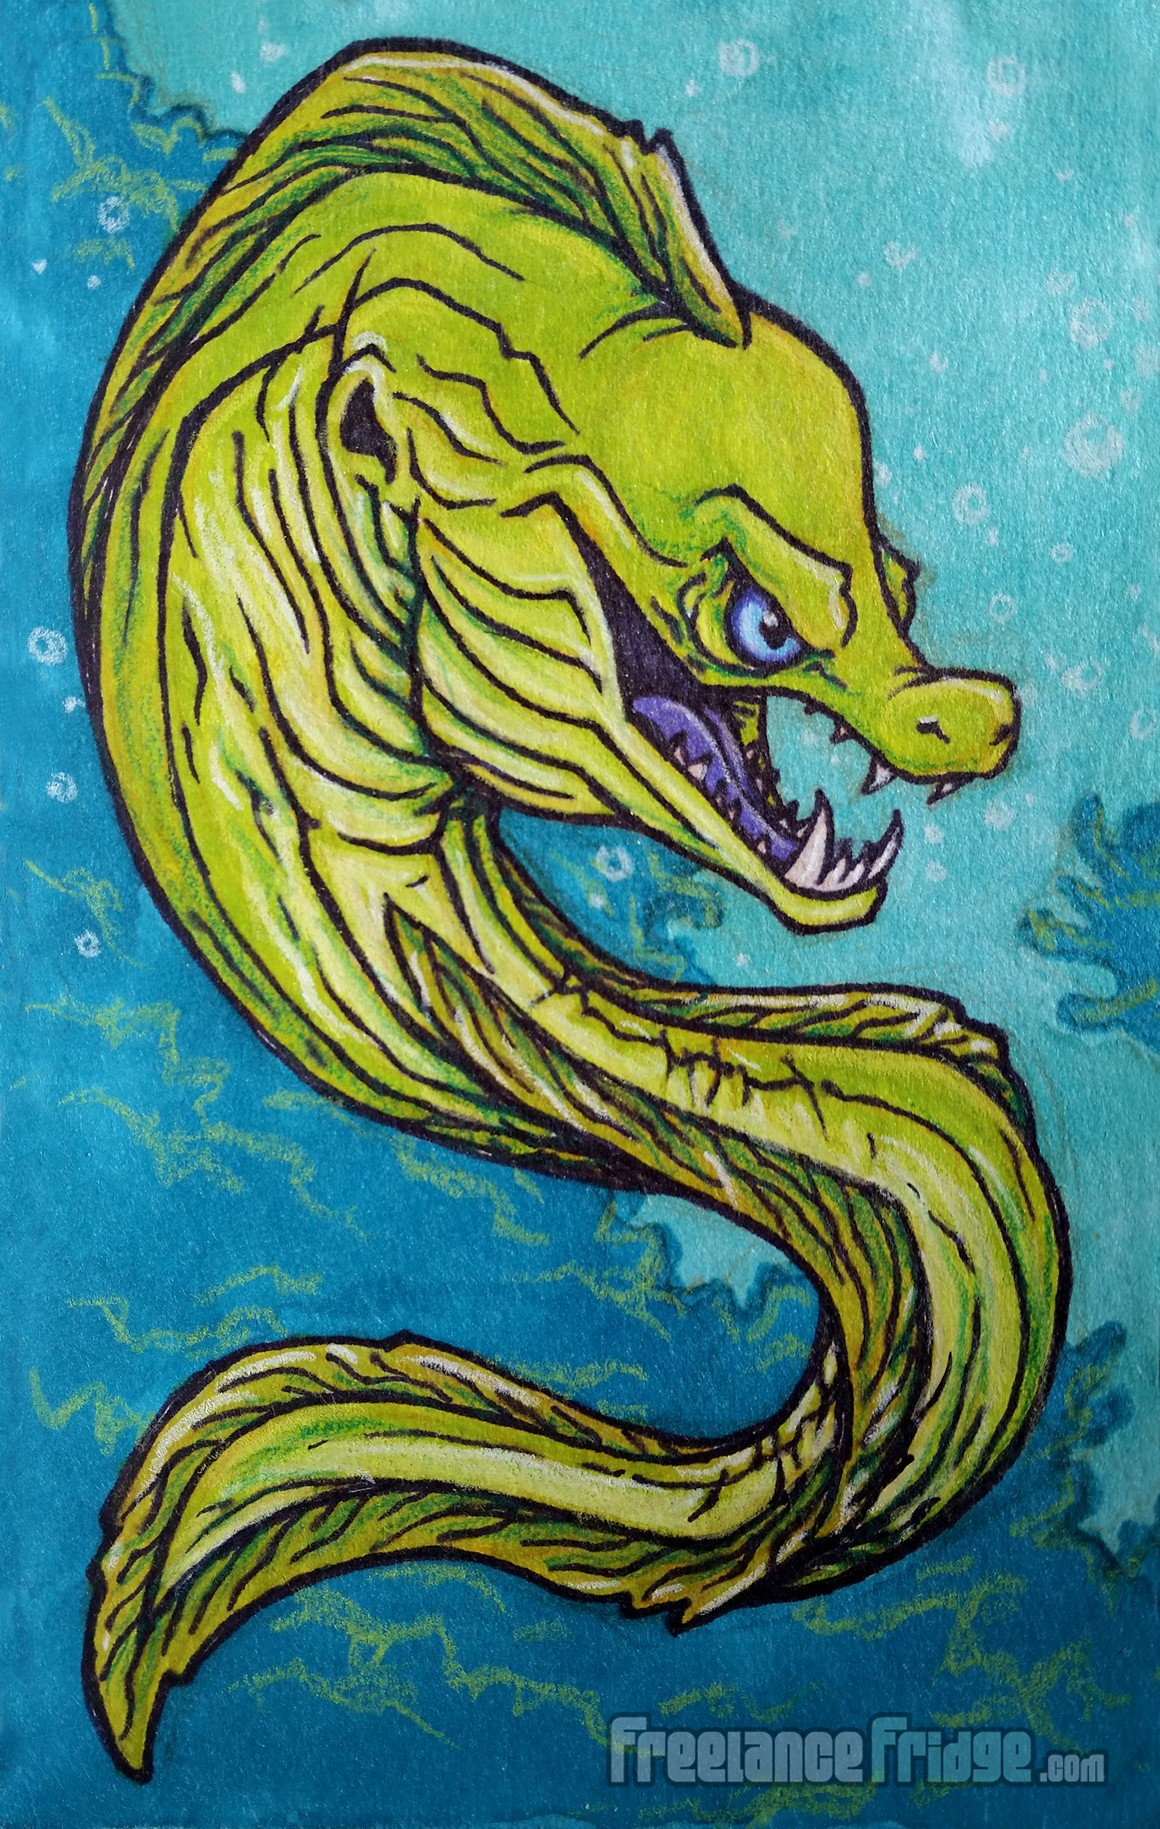 Mean Cool Green Moray Eel Ocean Creature Concept Cartoon Sharpie and Marker Drawing Illustration